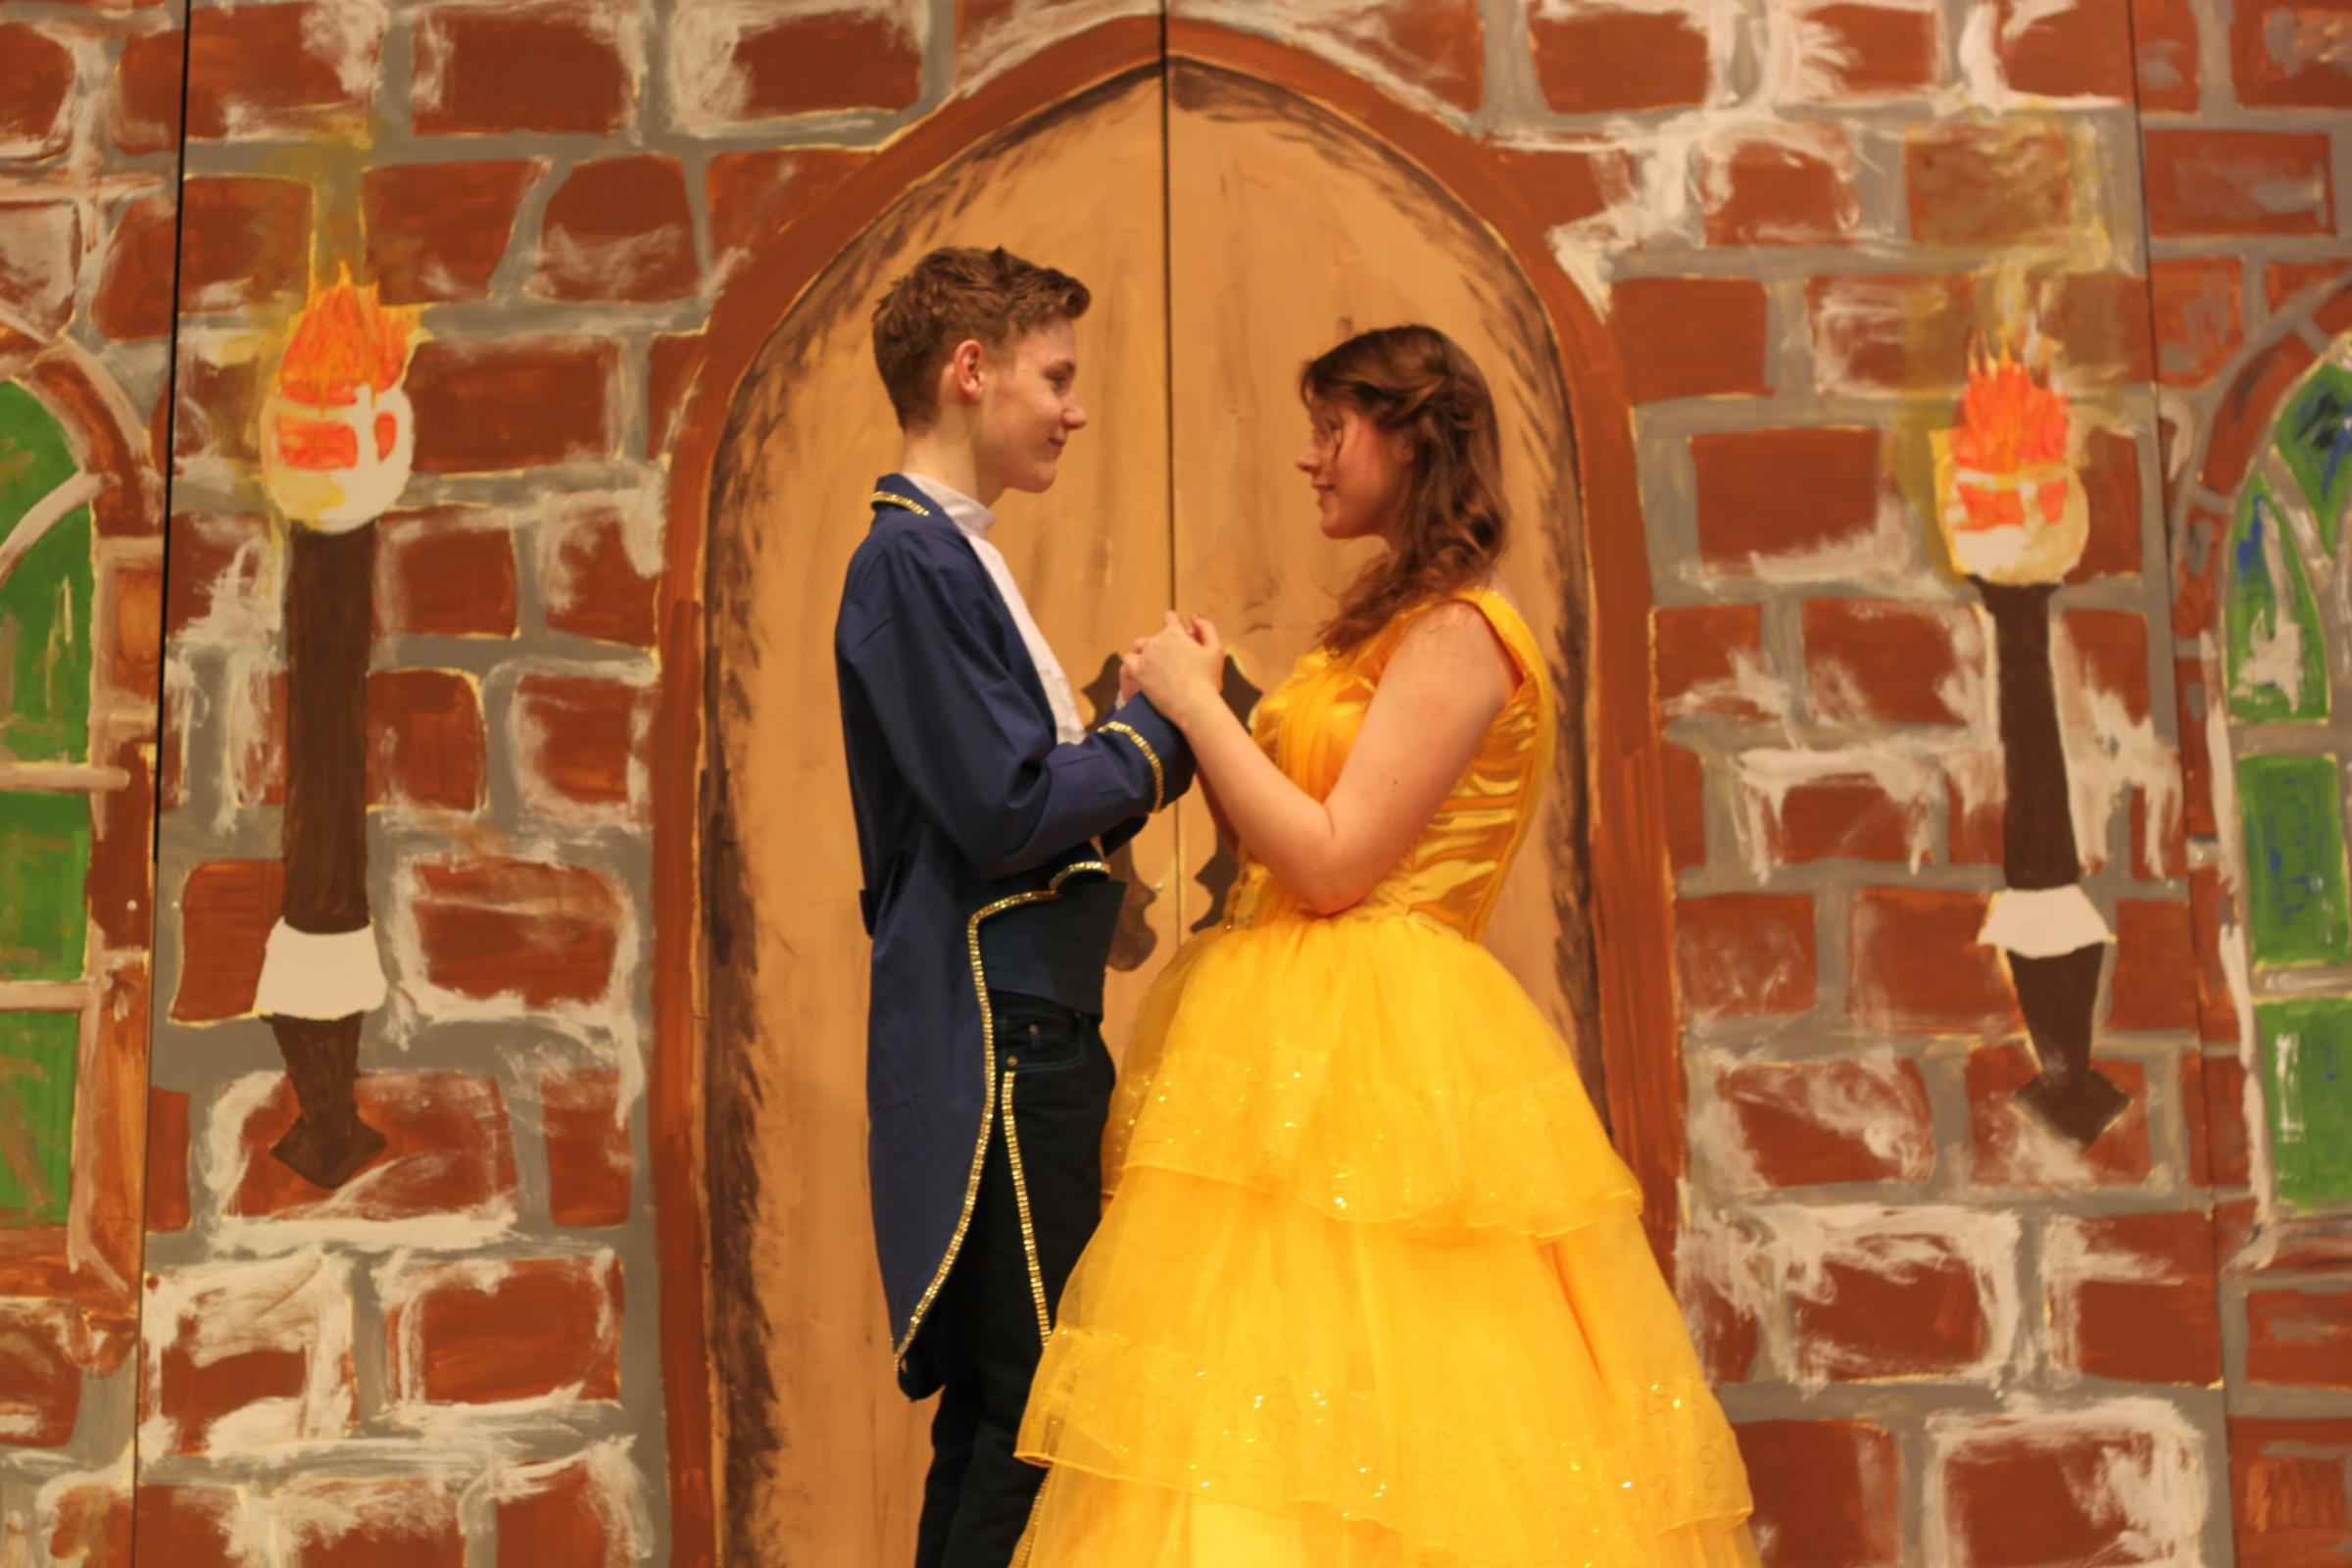 John Watkins (15) and Jasmine Morris (15) star in Beauty & The Beast